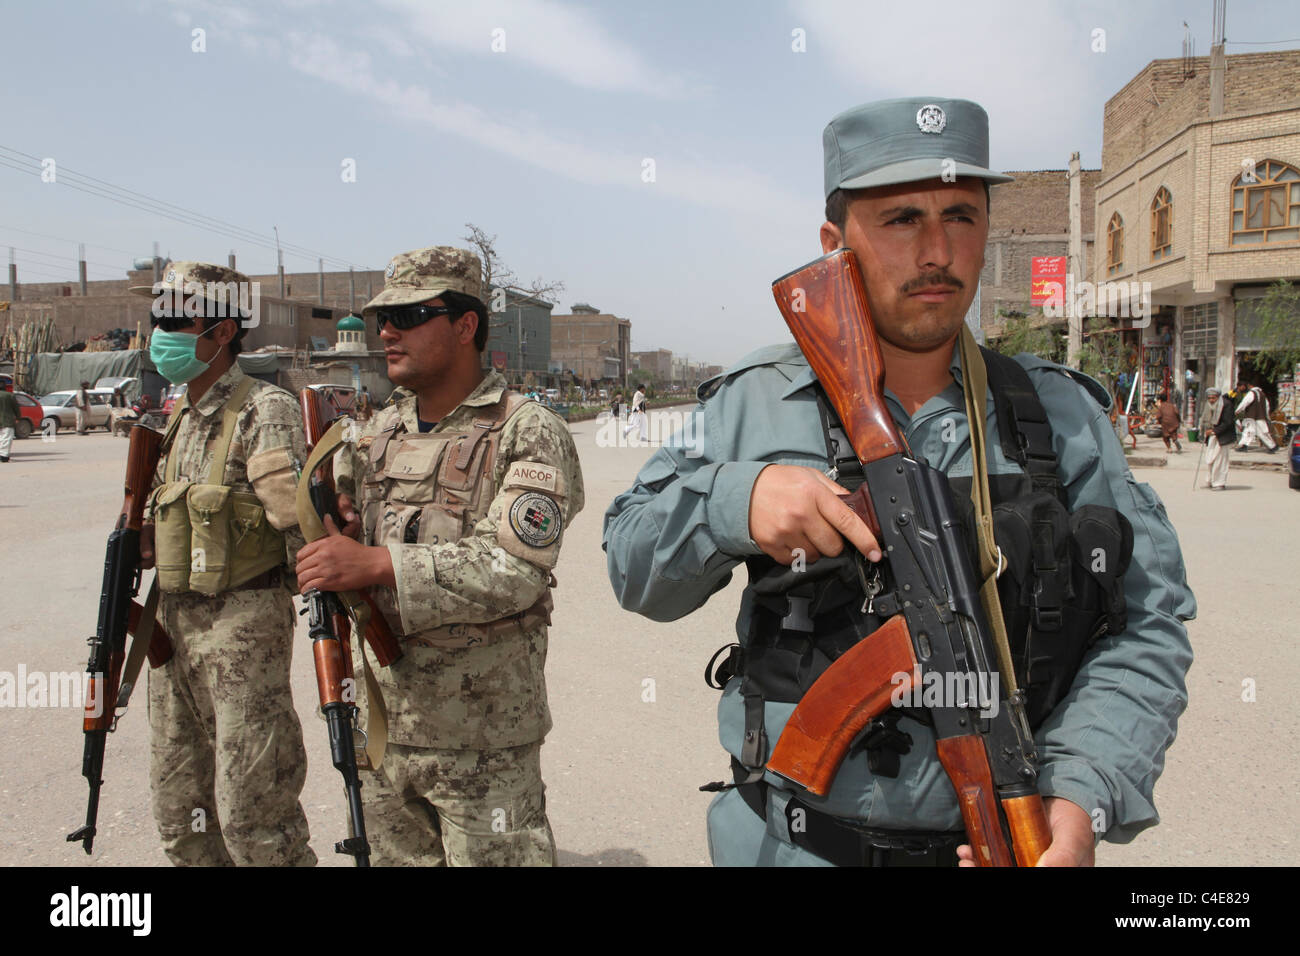 Afghan police and military patrol in Kabul - Stock Image